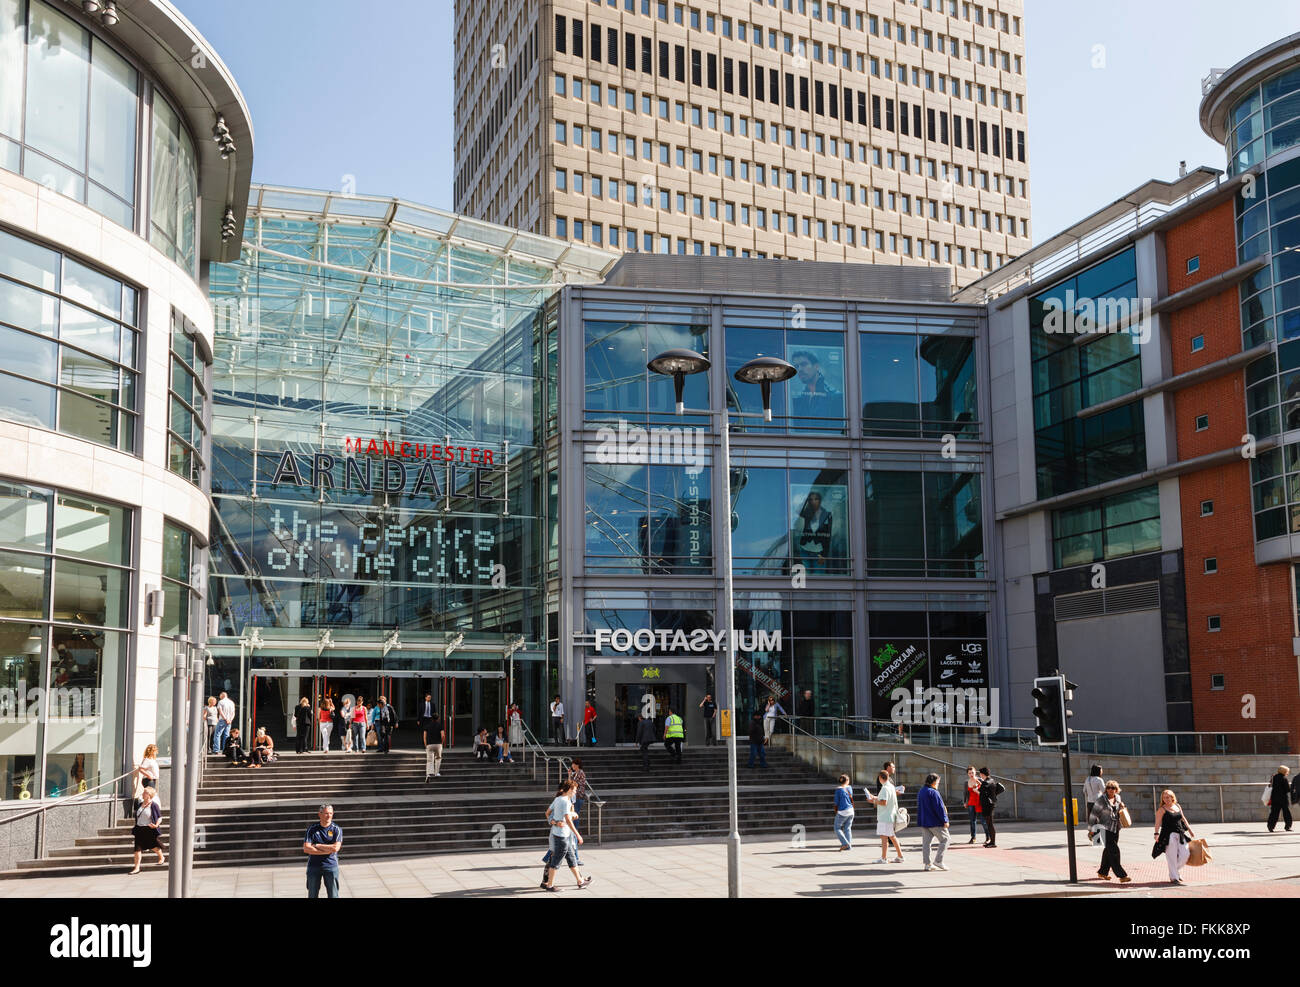 Entrance to the Arndale shopping centre in the city centre. Corporation Street, Manchester, England, UK, Britain. - Stock Image